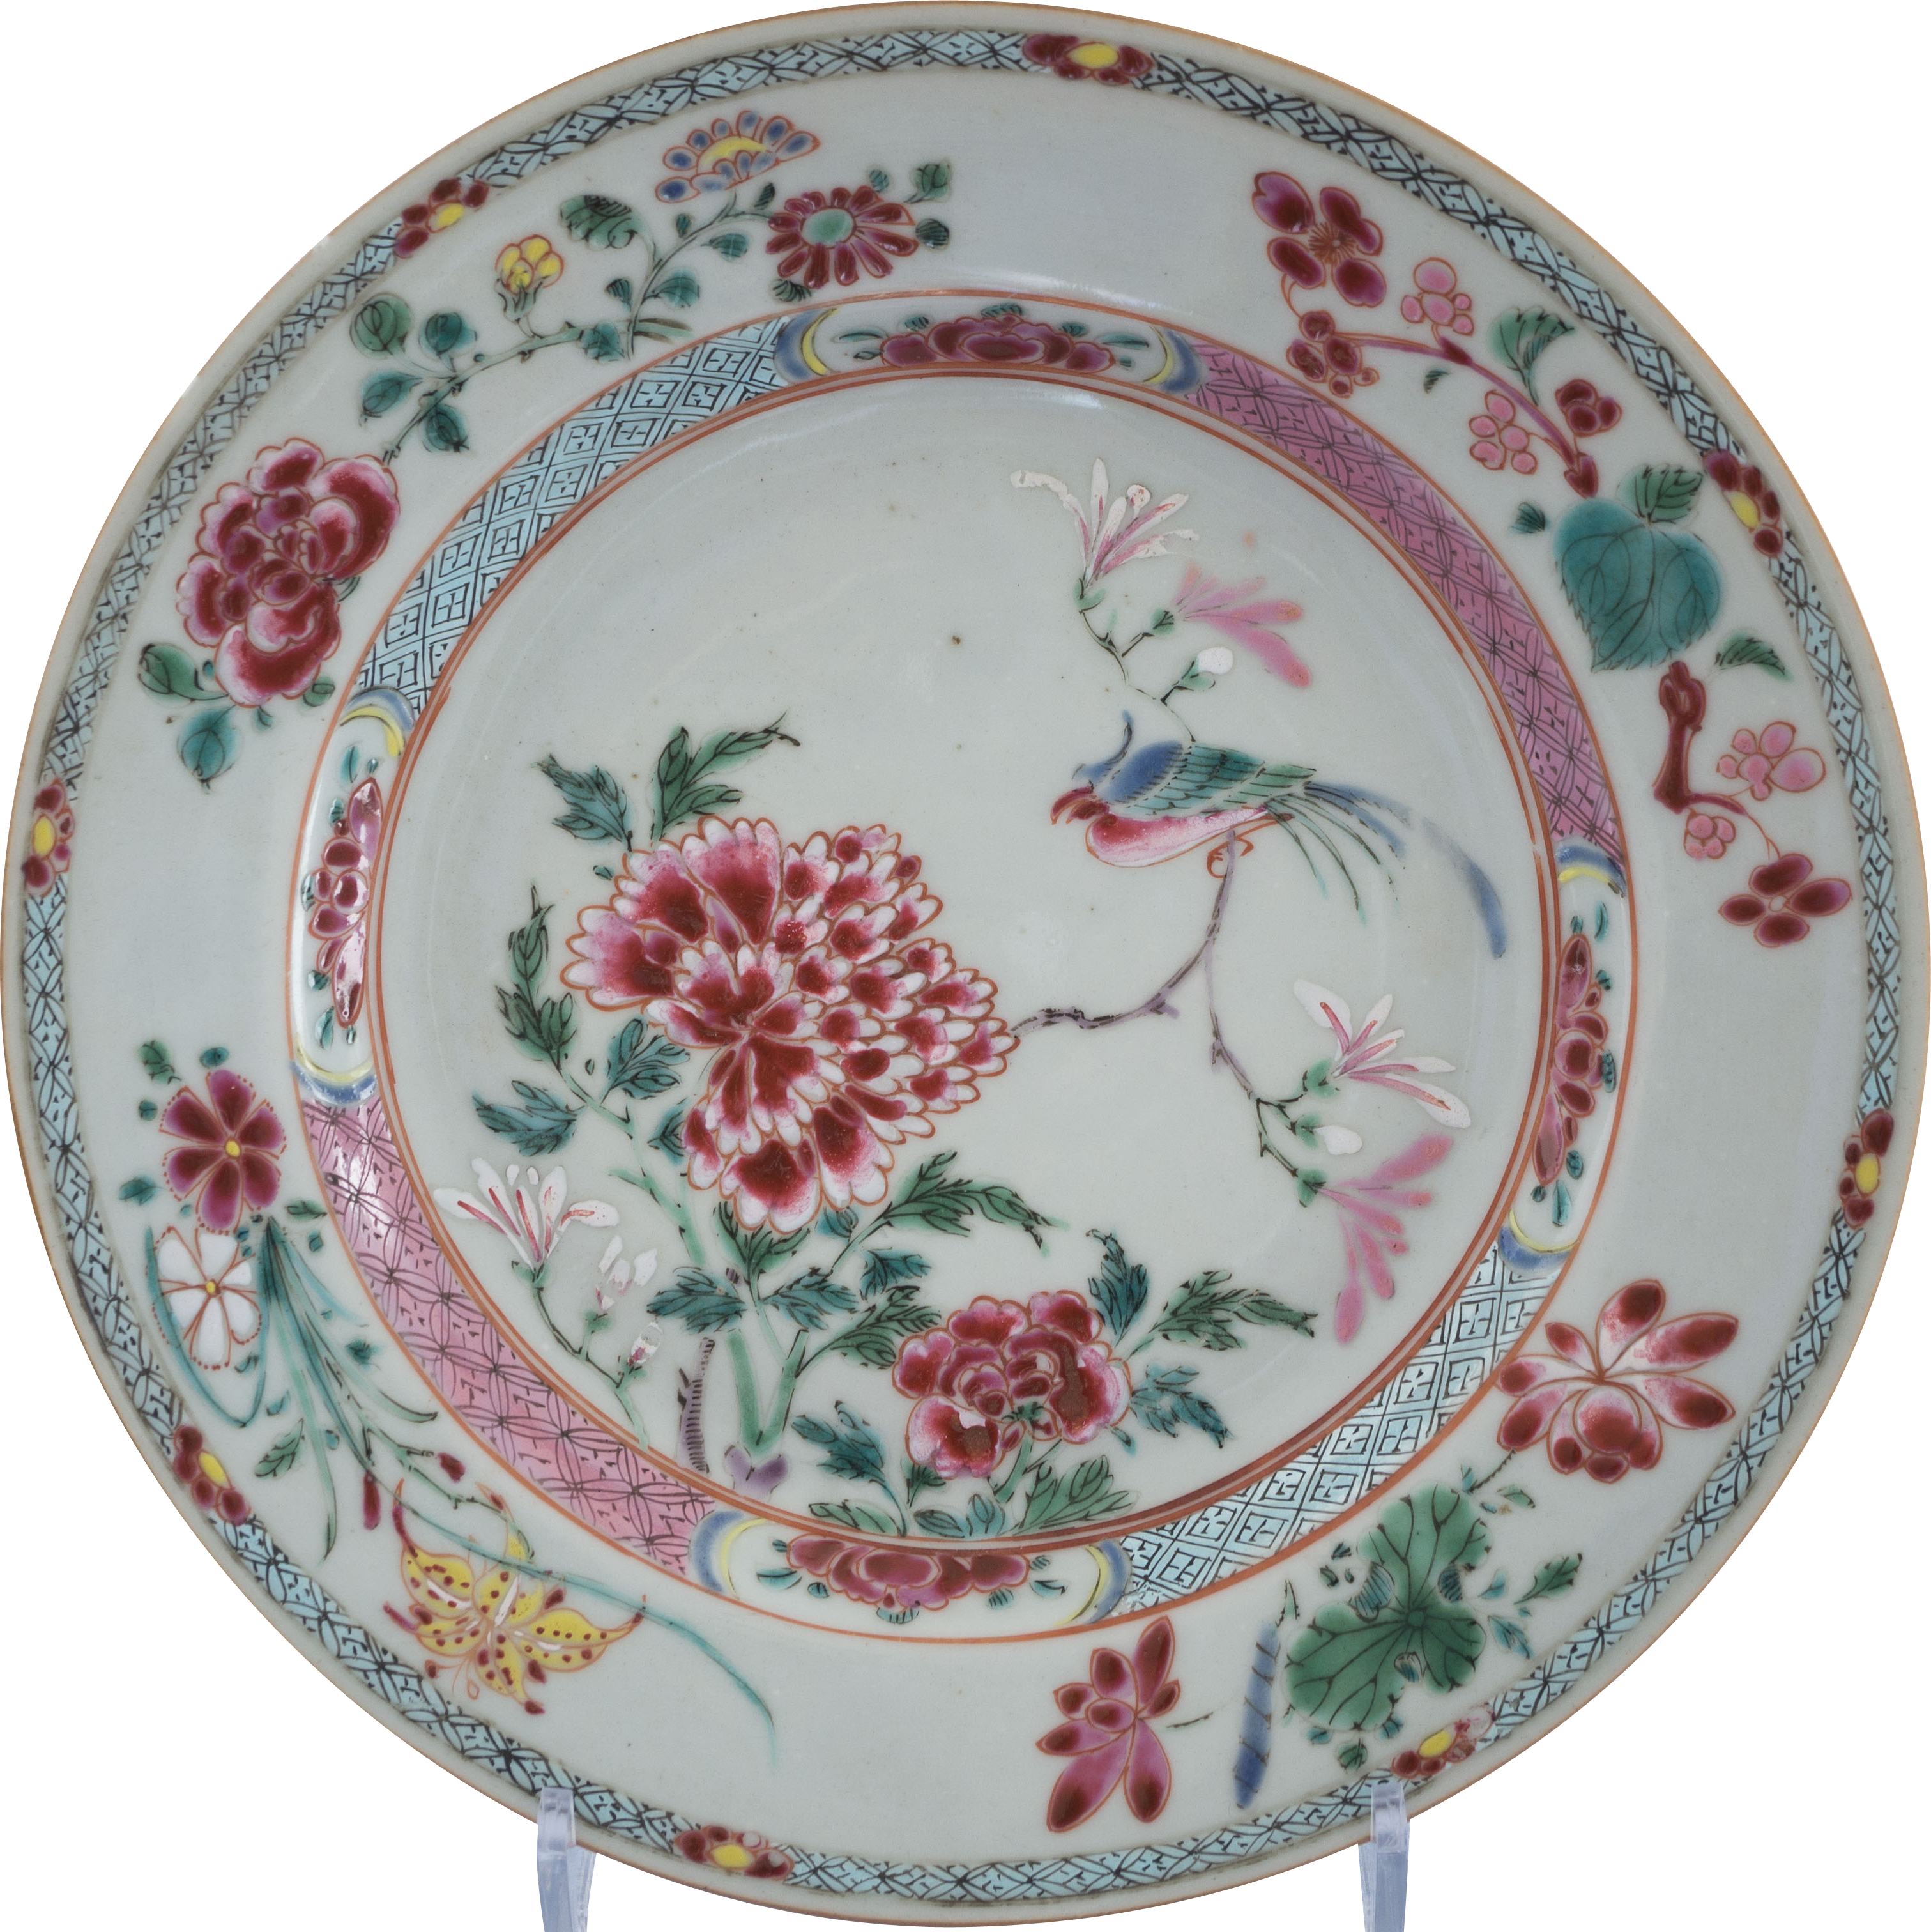 A Chinese export porcelain famille rose plate decorated with a bird. Yongzheng period. The center scene with a bird amongst peonies. On the rim, sprays of flowers.